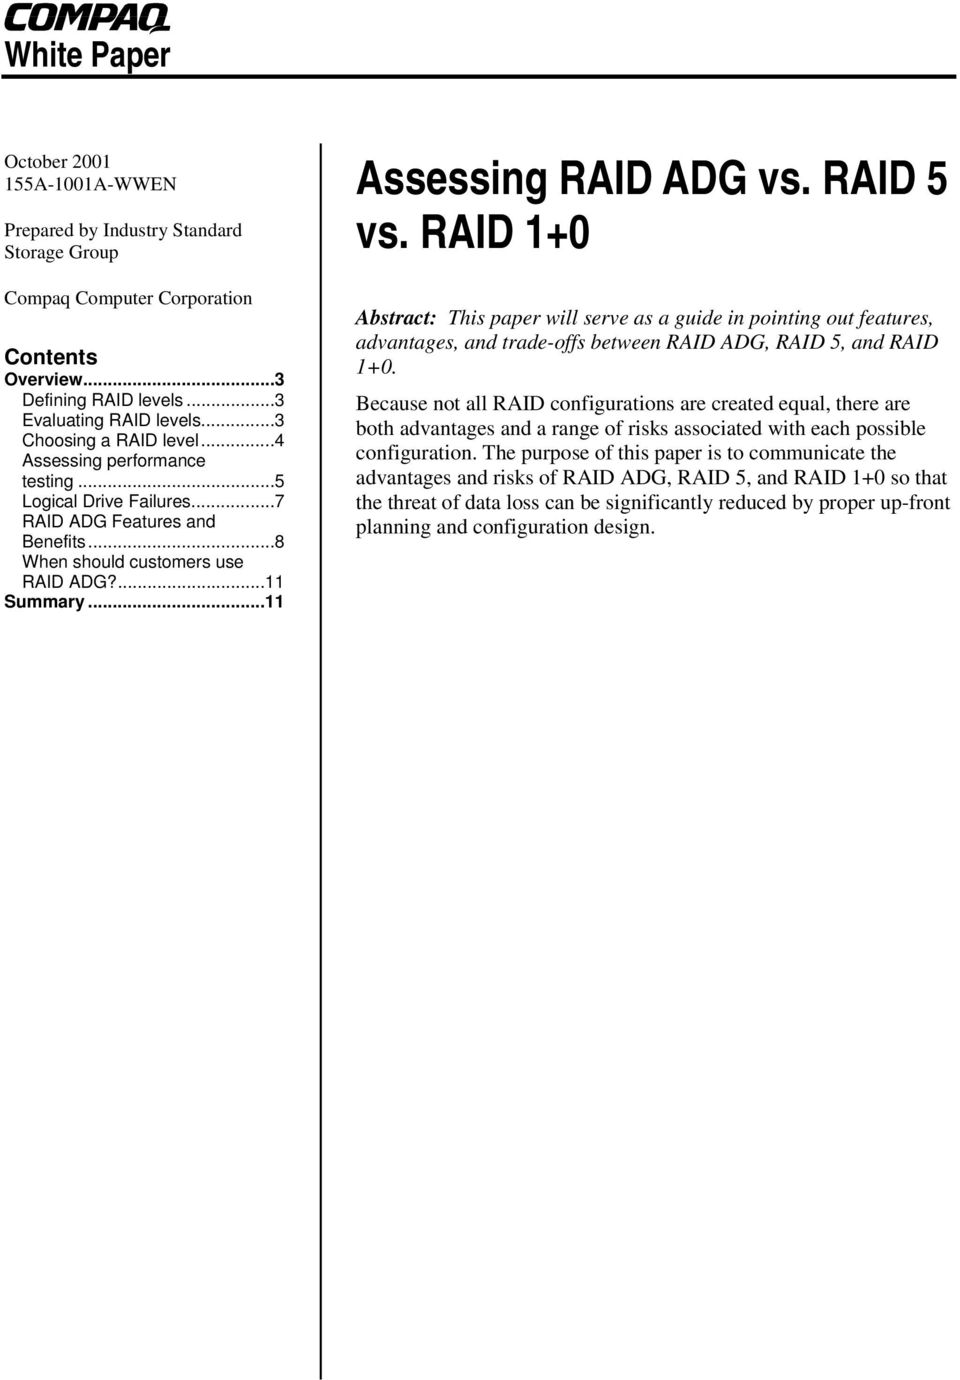 RAID 1+0 Abstract: This paper will serve as a guide in pointing out features, advantages, and trade-offs between RAID ADG, RAID 5, and RAID 1+0.